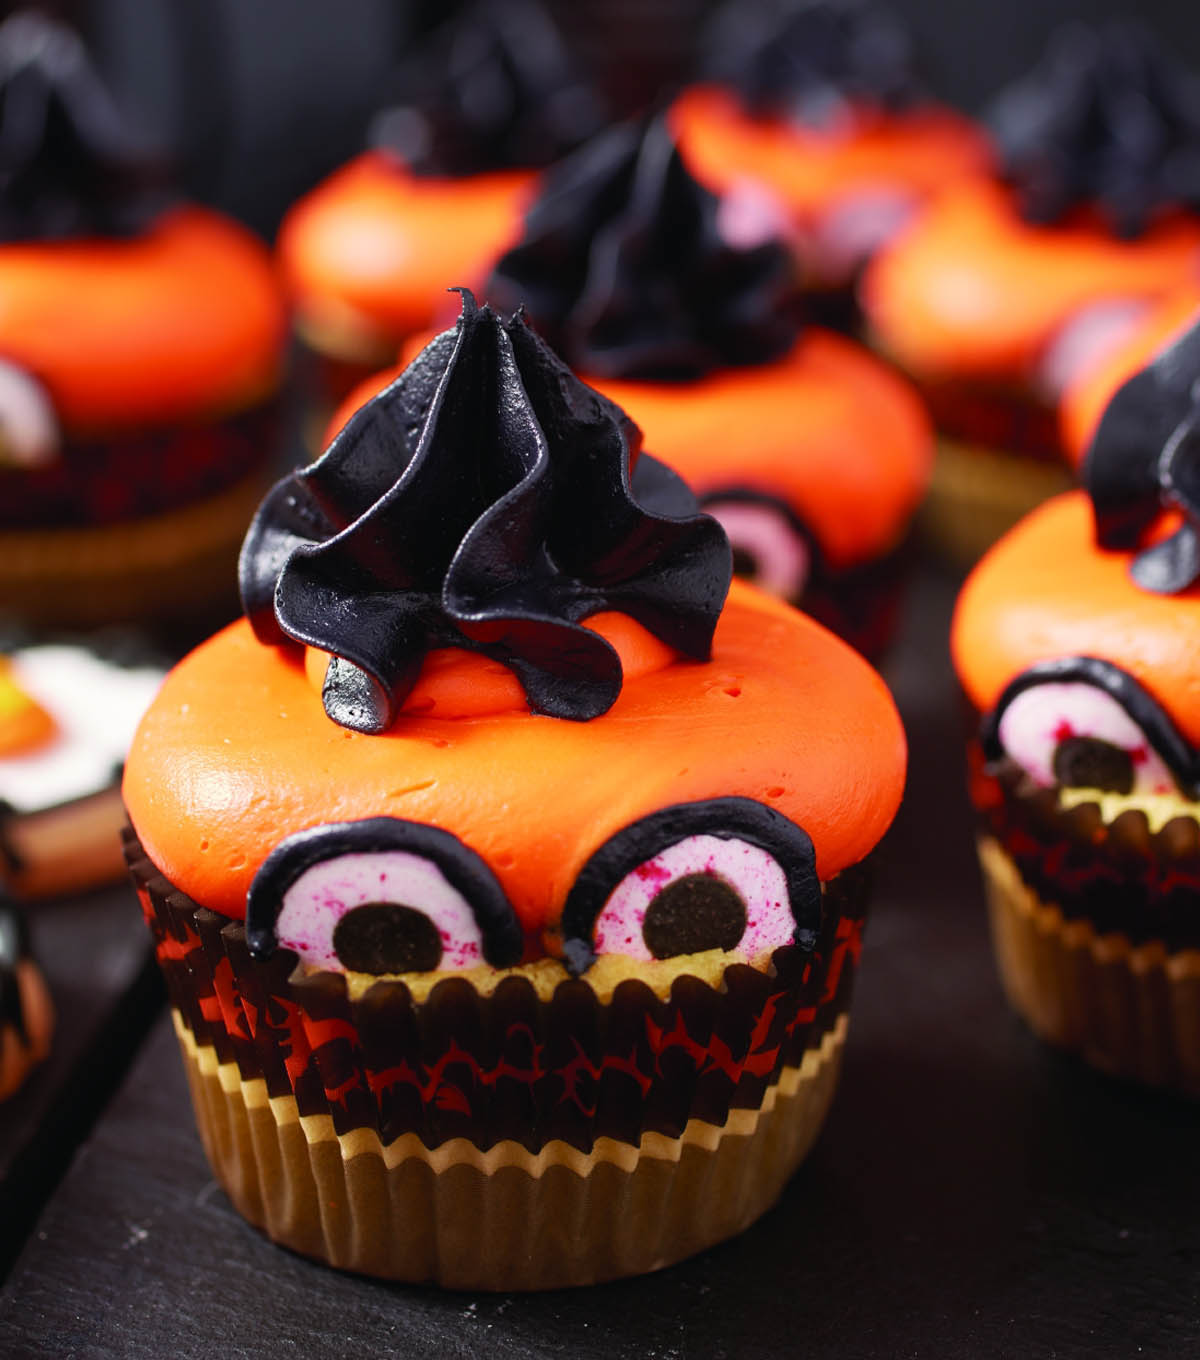 Spooky Eyed Cupcakes